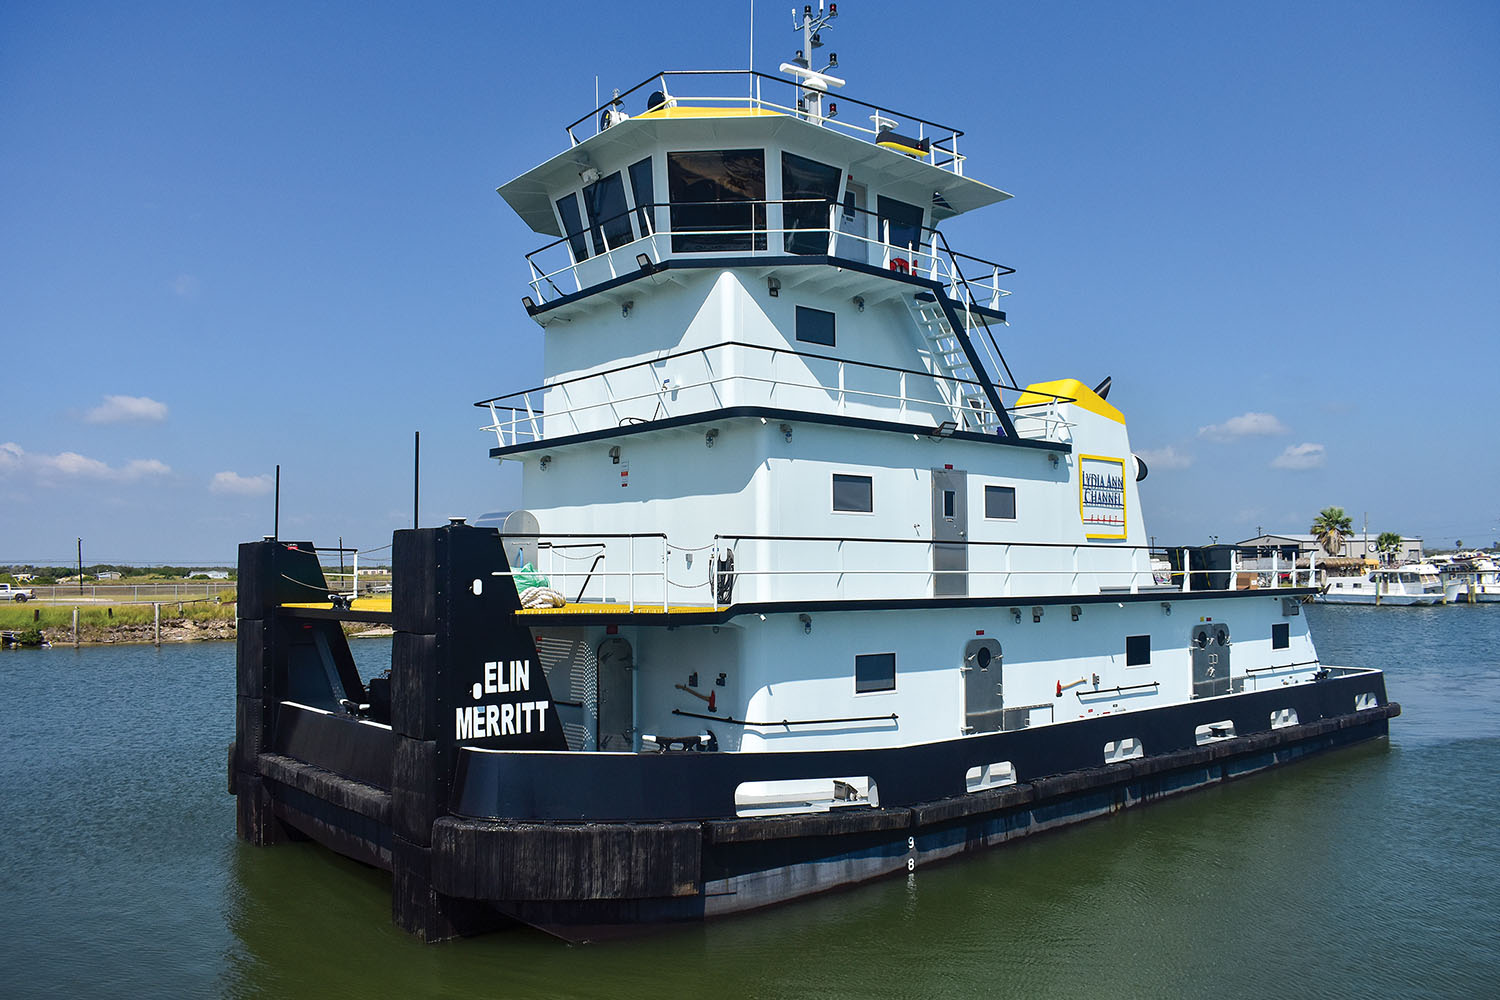 Lydia Ann Channel Fleet christened four towboats in an October 16 ceremony, including the mv. Elin Merrit, the first new build in the company's fleet of towboats. It was constructed by Diversified Marine. (Photo by Tracy A. Adams)